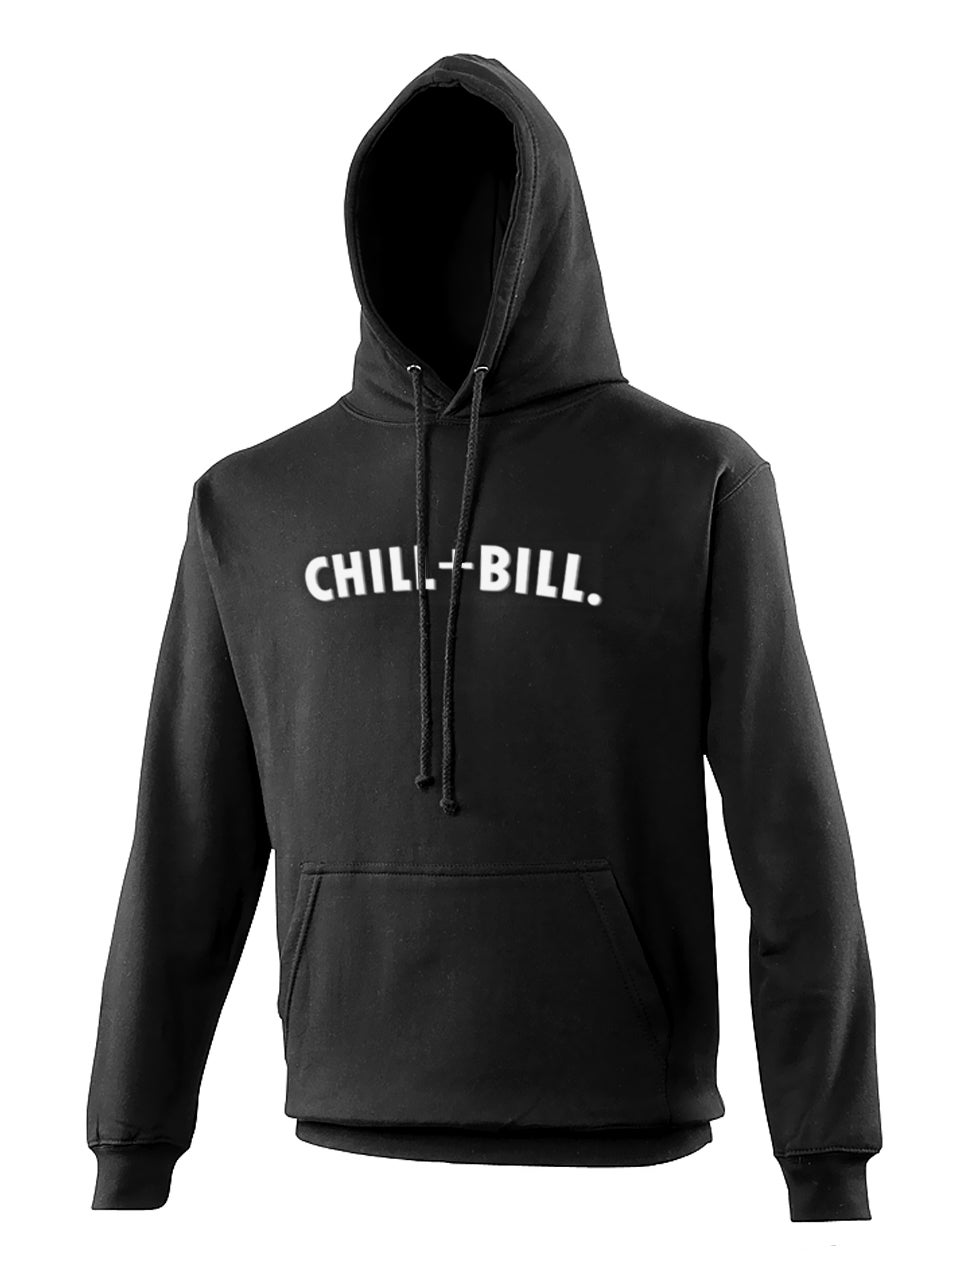 Image of Chill+Bill Hoodie in Black